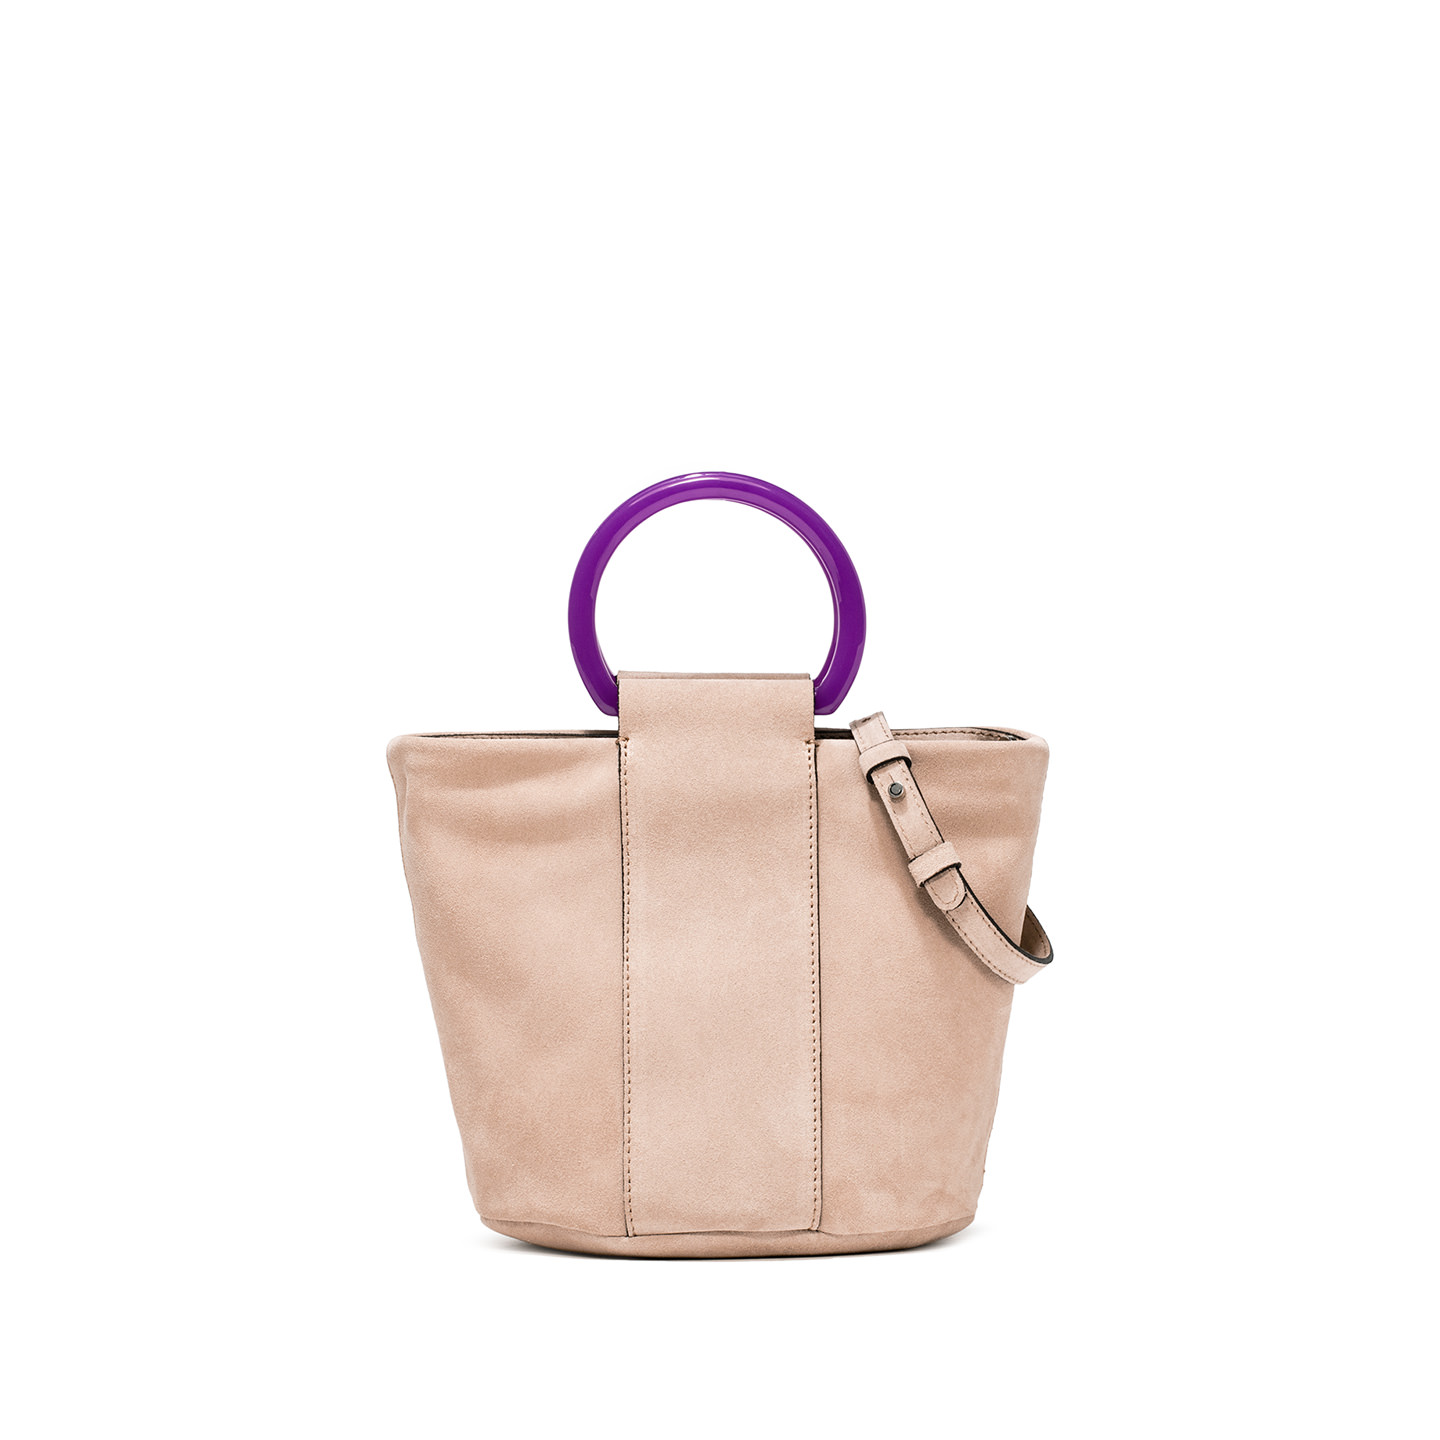 GIANNI CHIARINI: COLORELLA SMALL NUDE HANDBAG